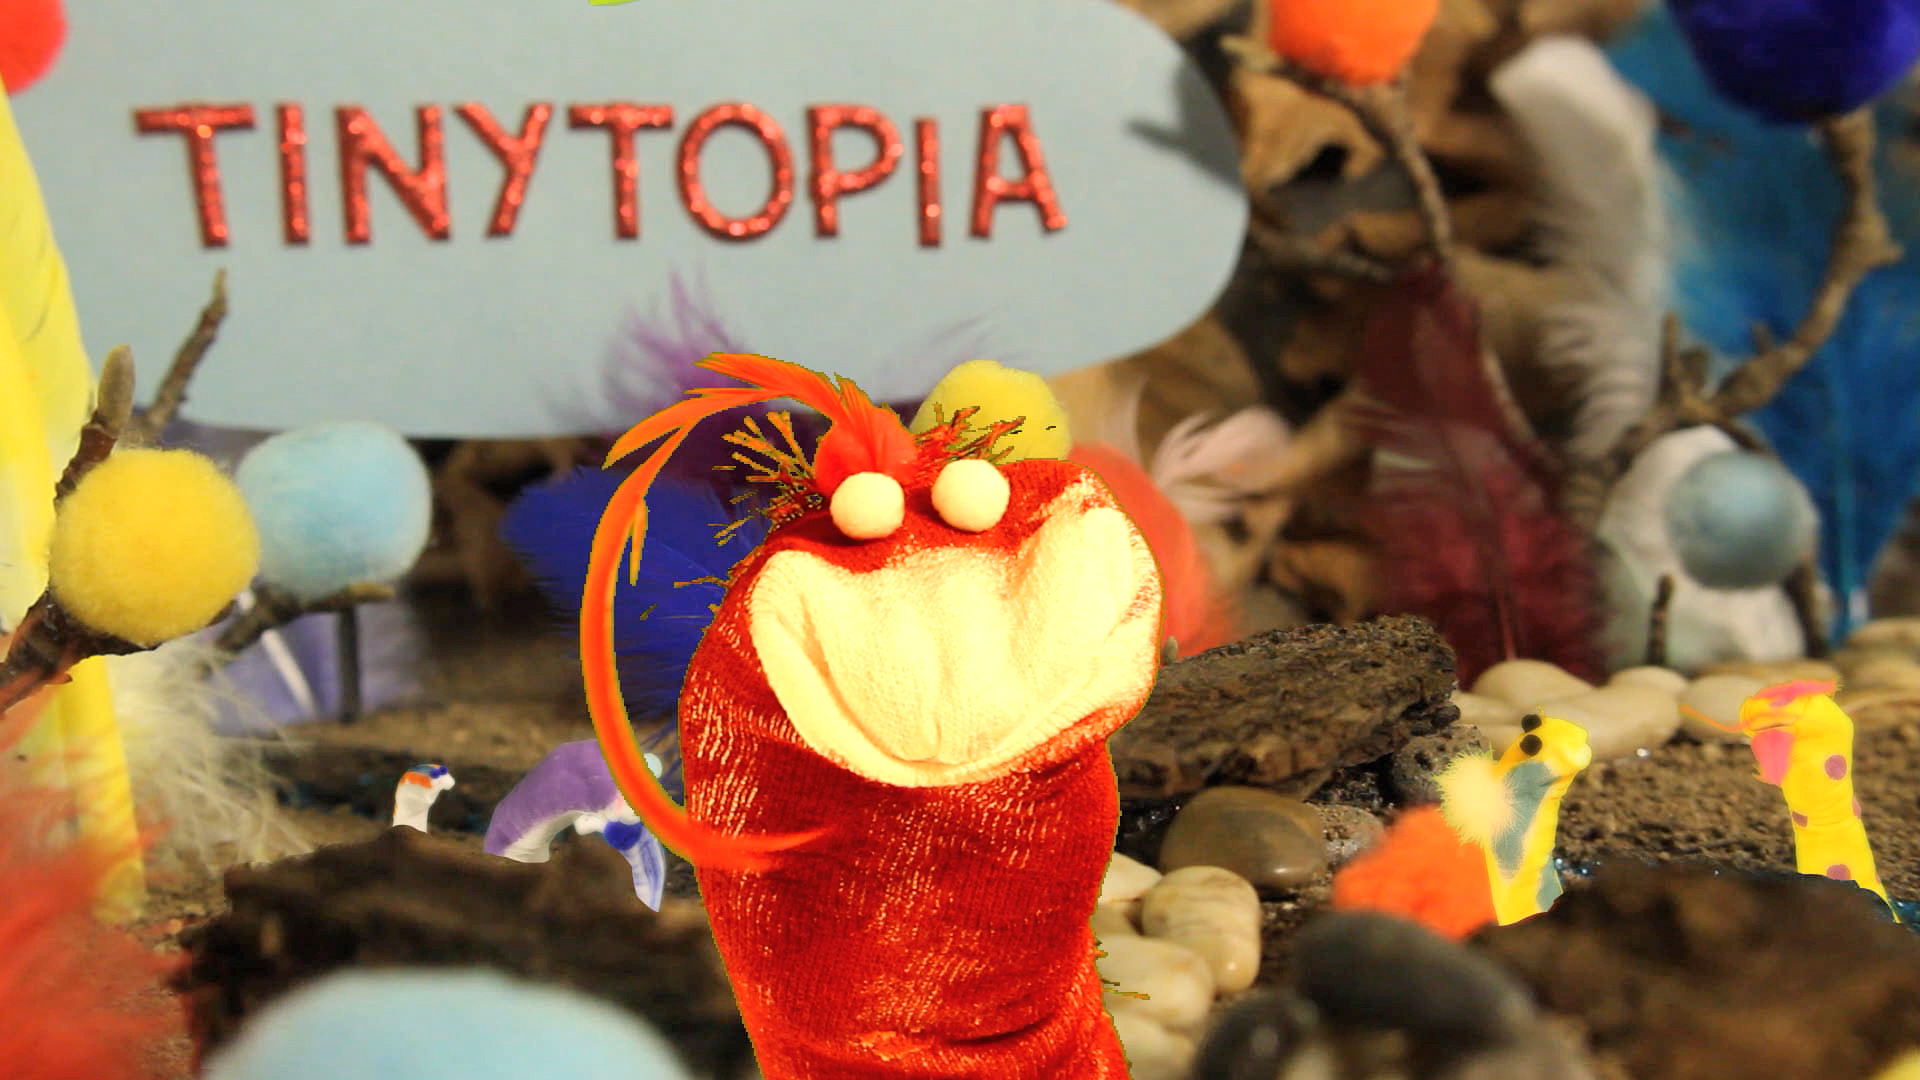 The Story of Tinytopia